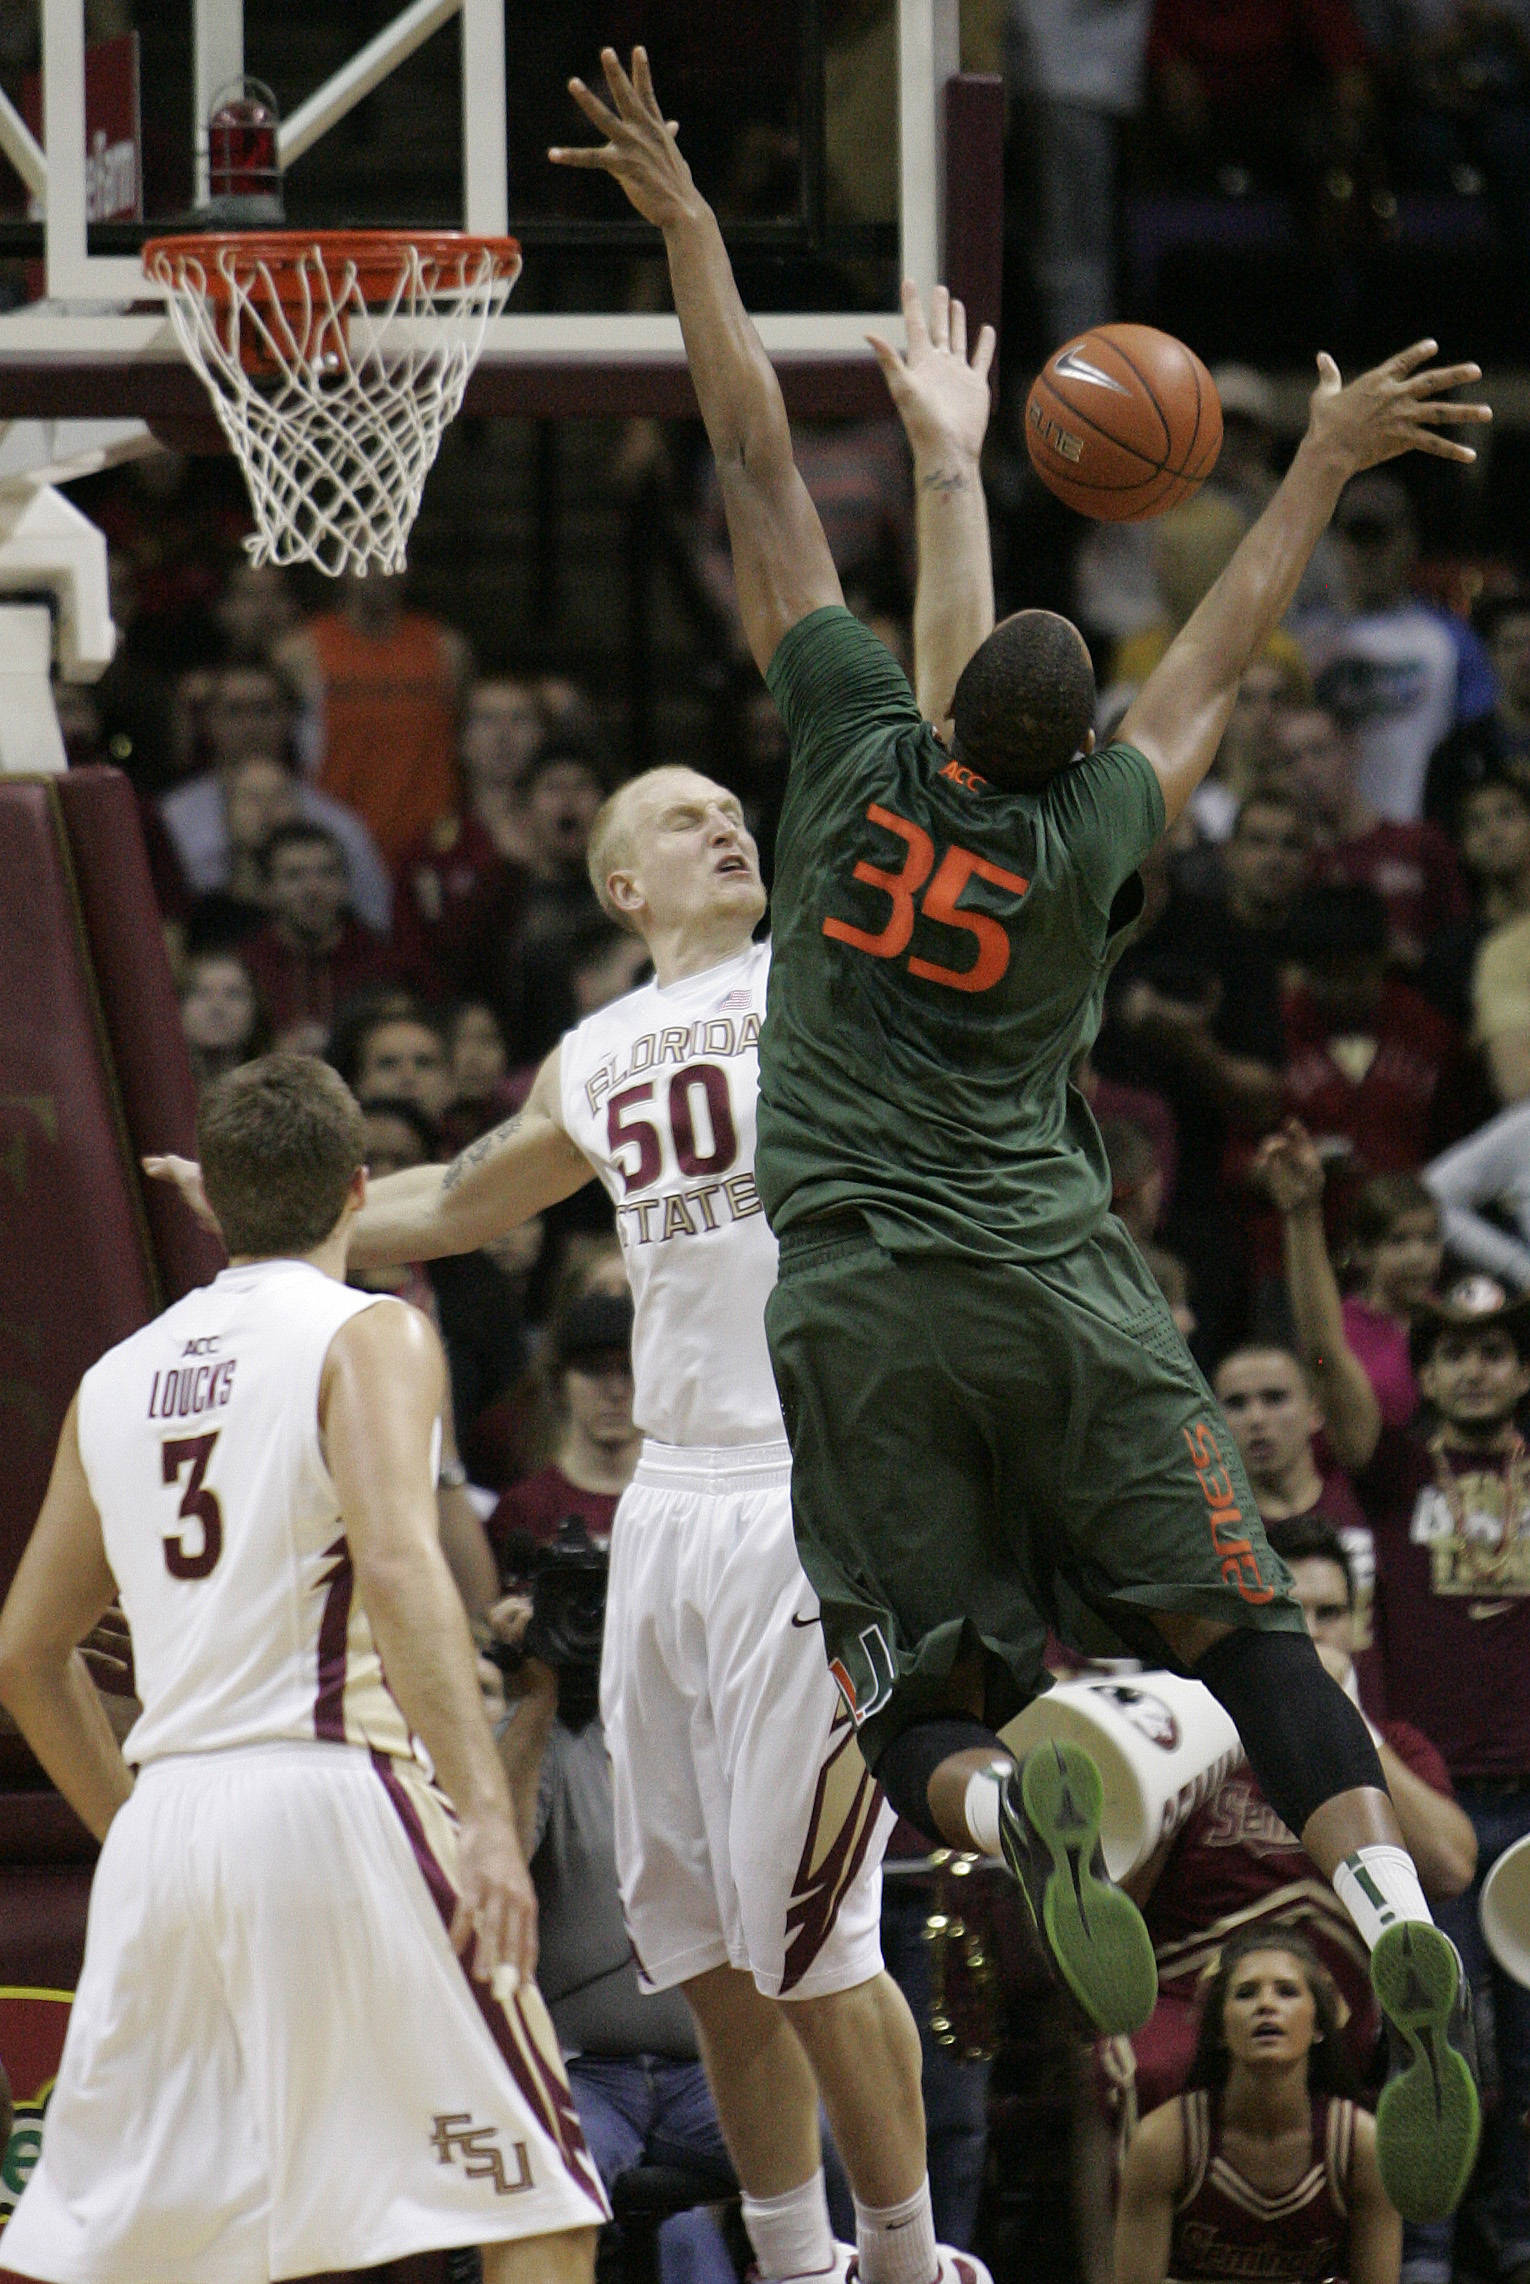 Florida State's Jon Kreft (50) blocks the shot attempt of Miami's Kenny Kadji  during the first half of an NCAA college basketball game on Saturday, Feb. 11, 2012 in Tallahassee, Fla.(AP Photo/Steve Cannon)